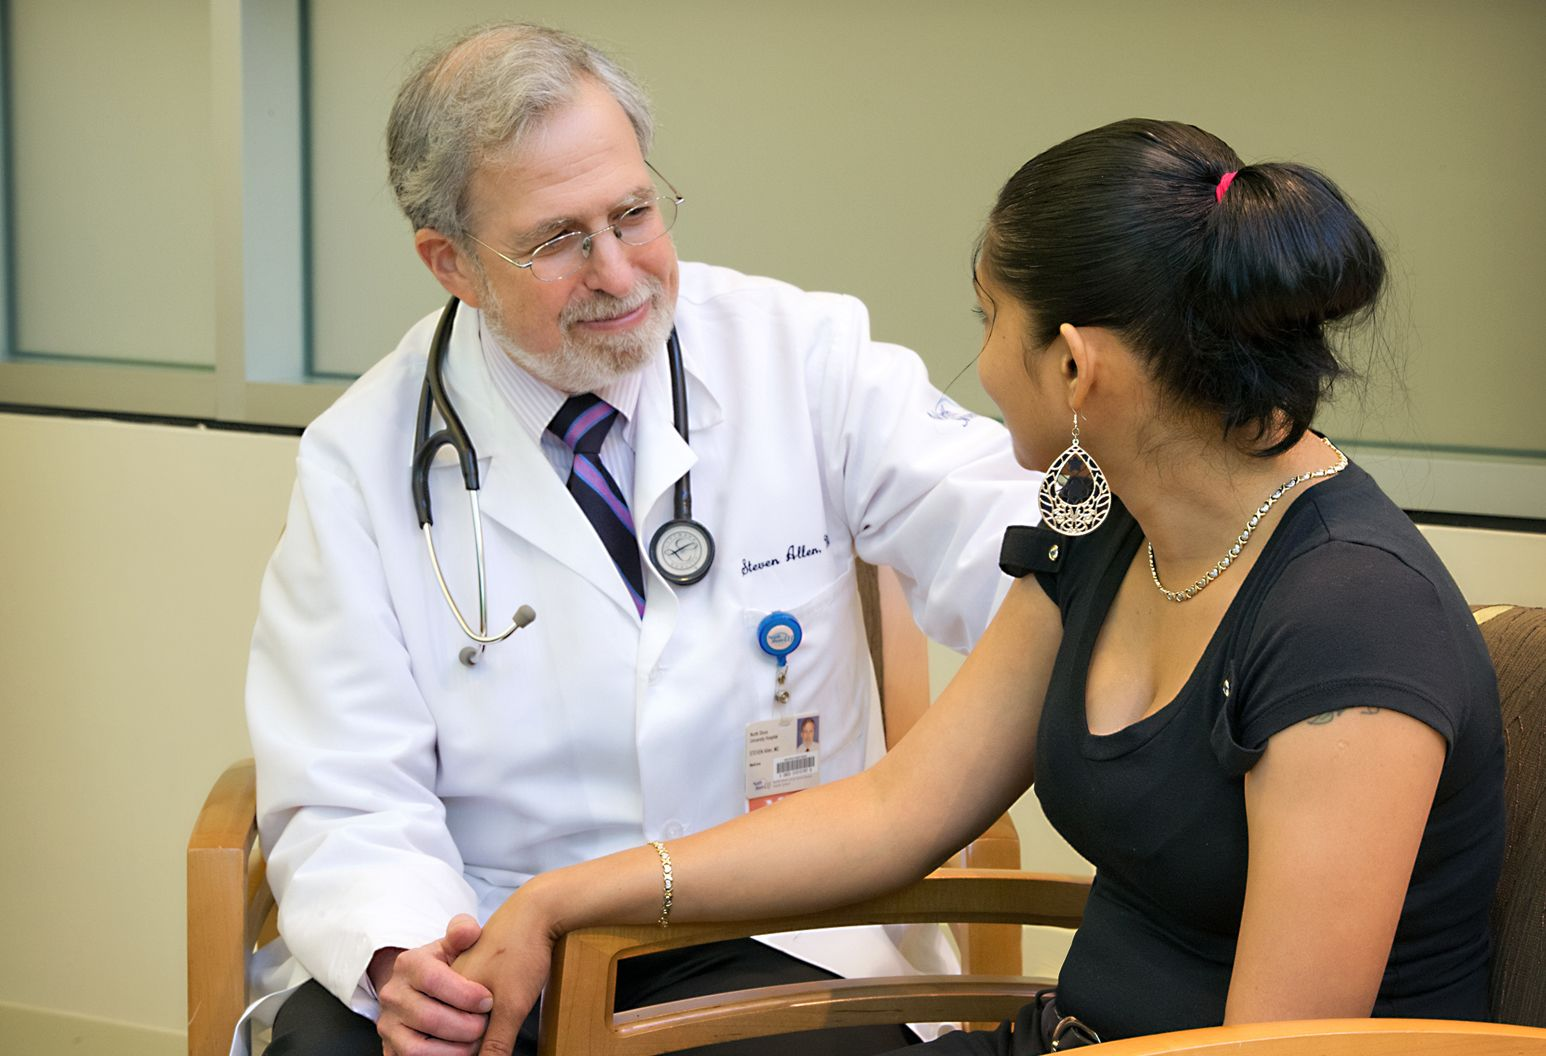 Physician sitting with patient, holding her hand reassuringly